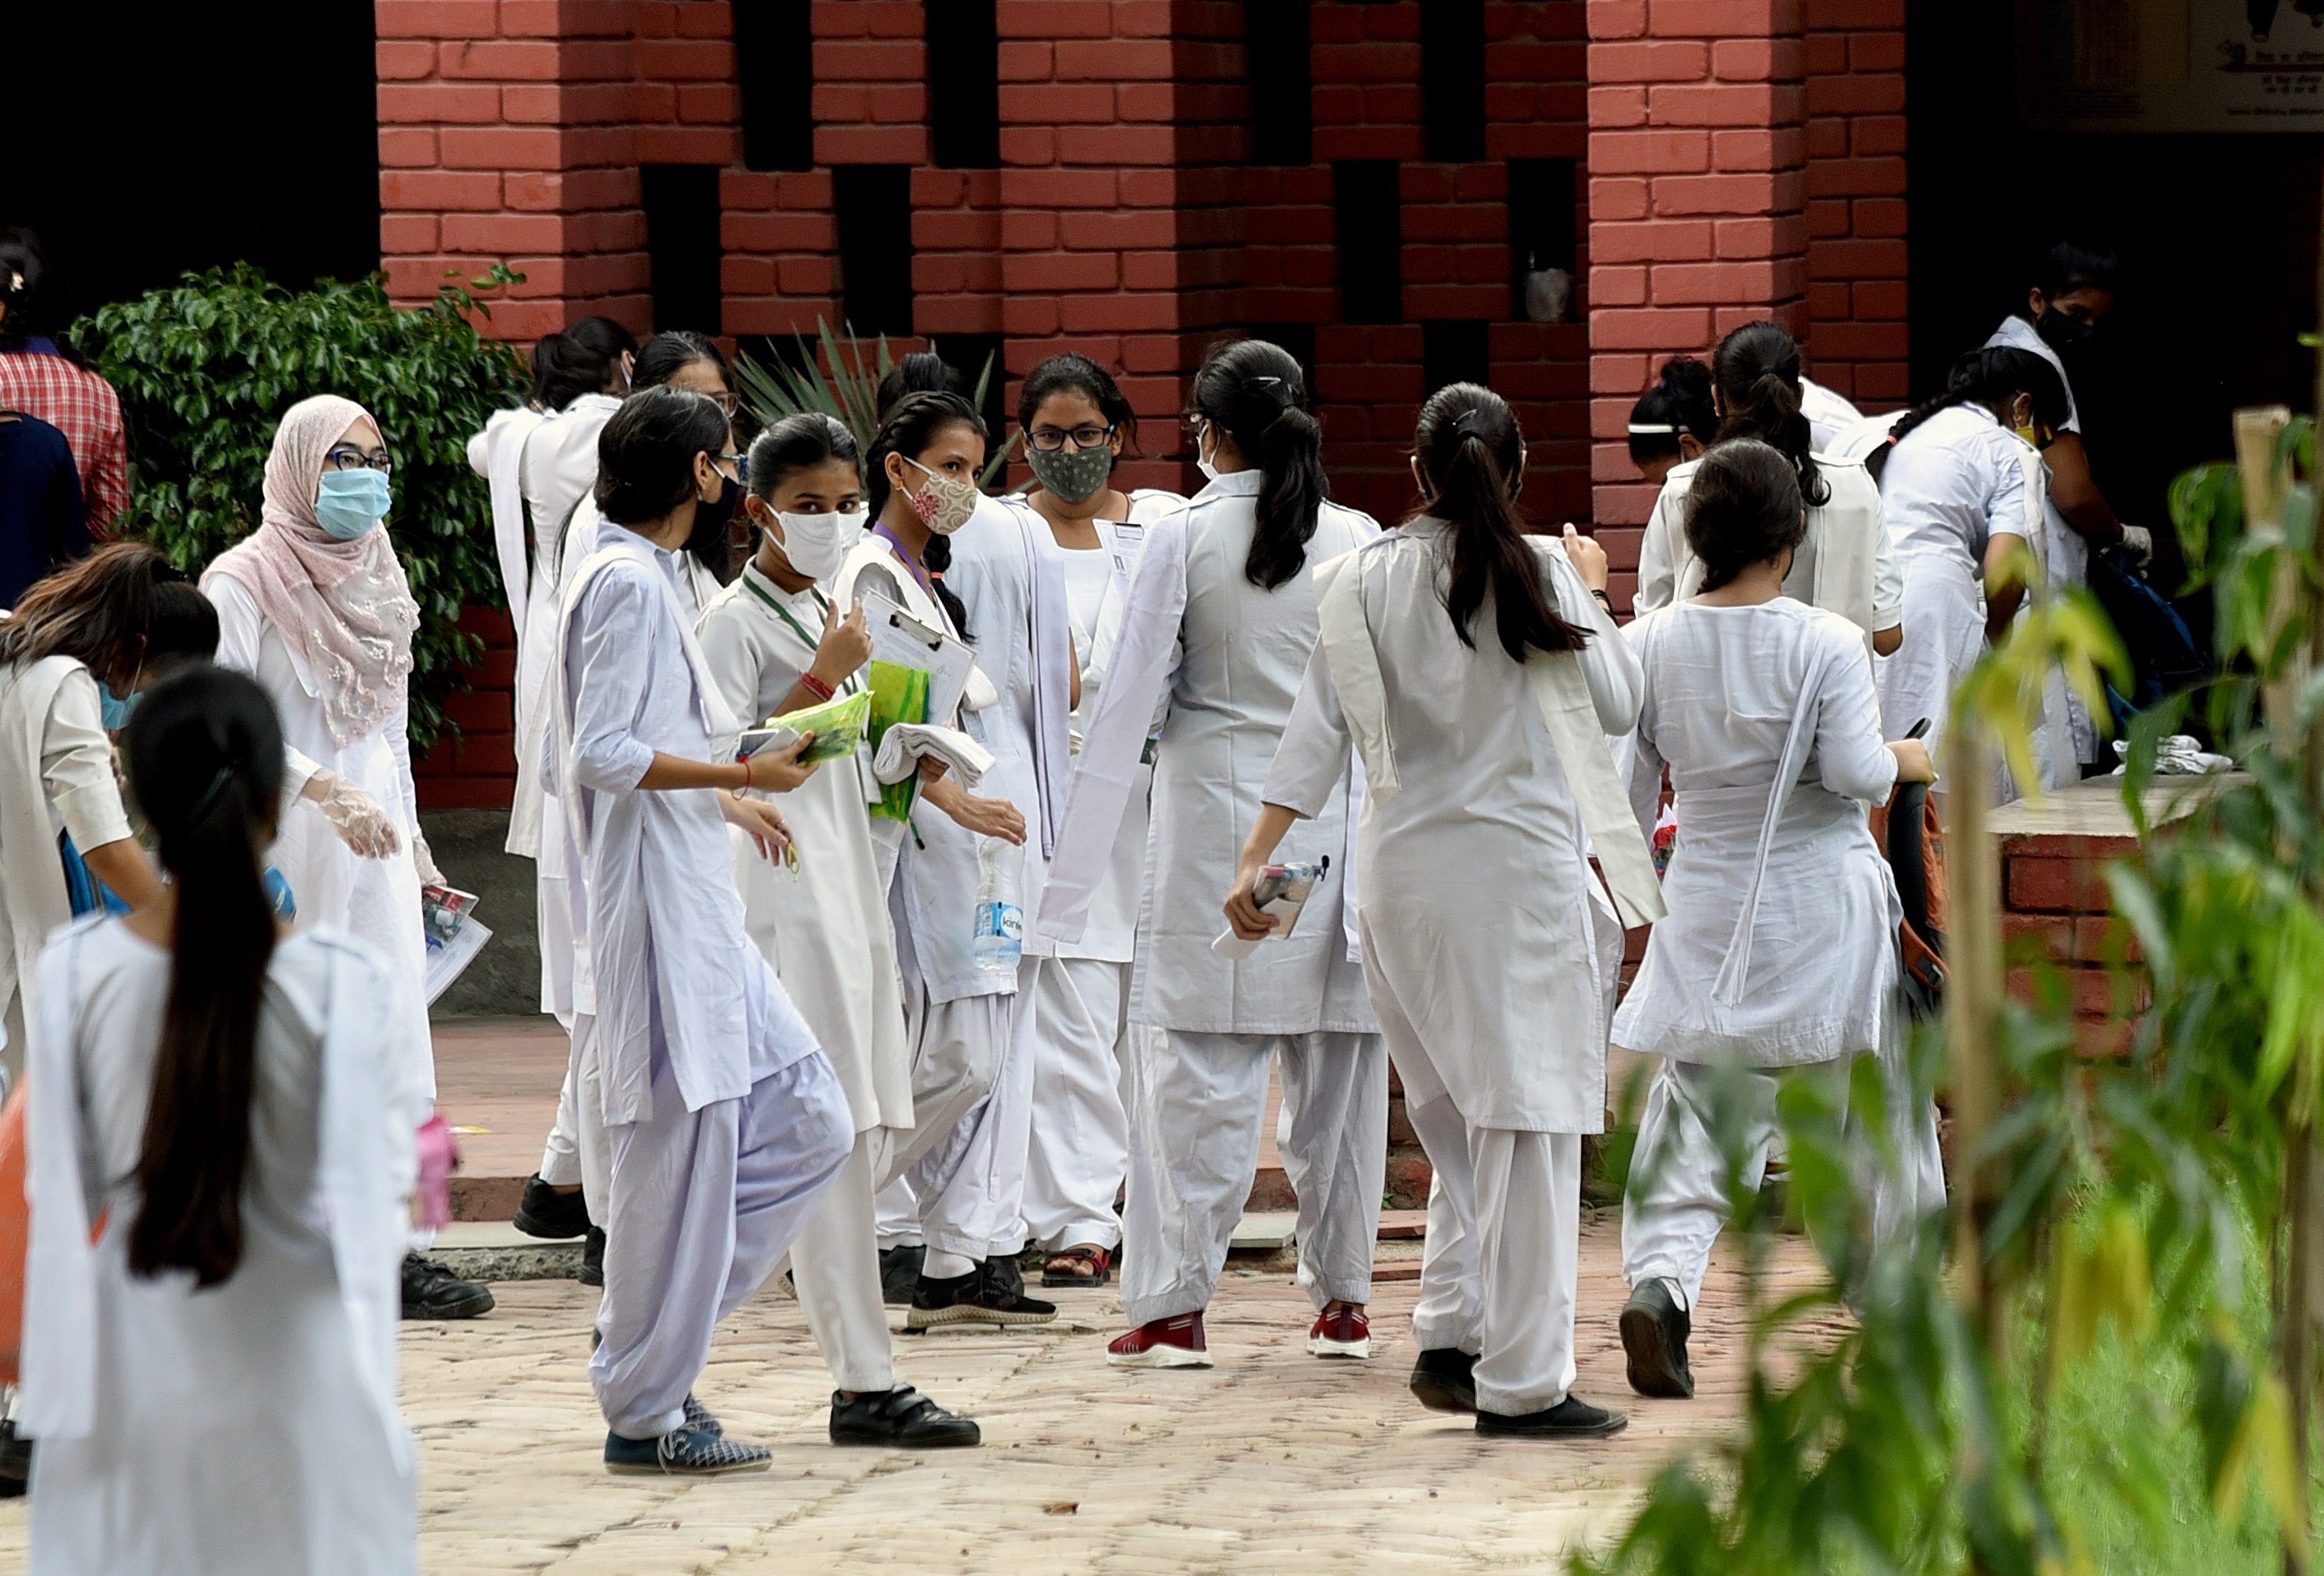 Students of class 10th wearing masks arrive to appear for compartment exam at an examination centre amid Coronavirus disease, in New Delhi on Wednesday.